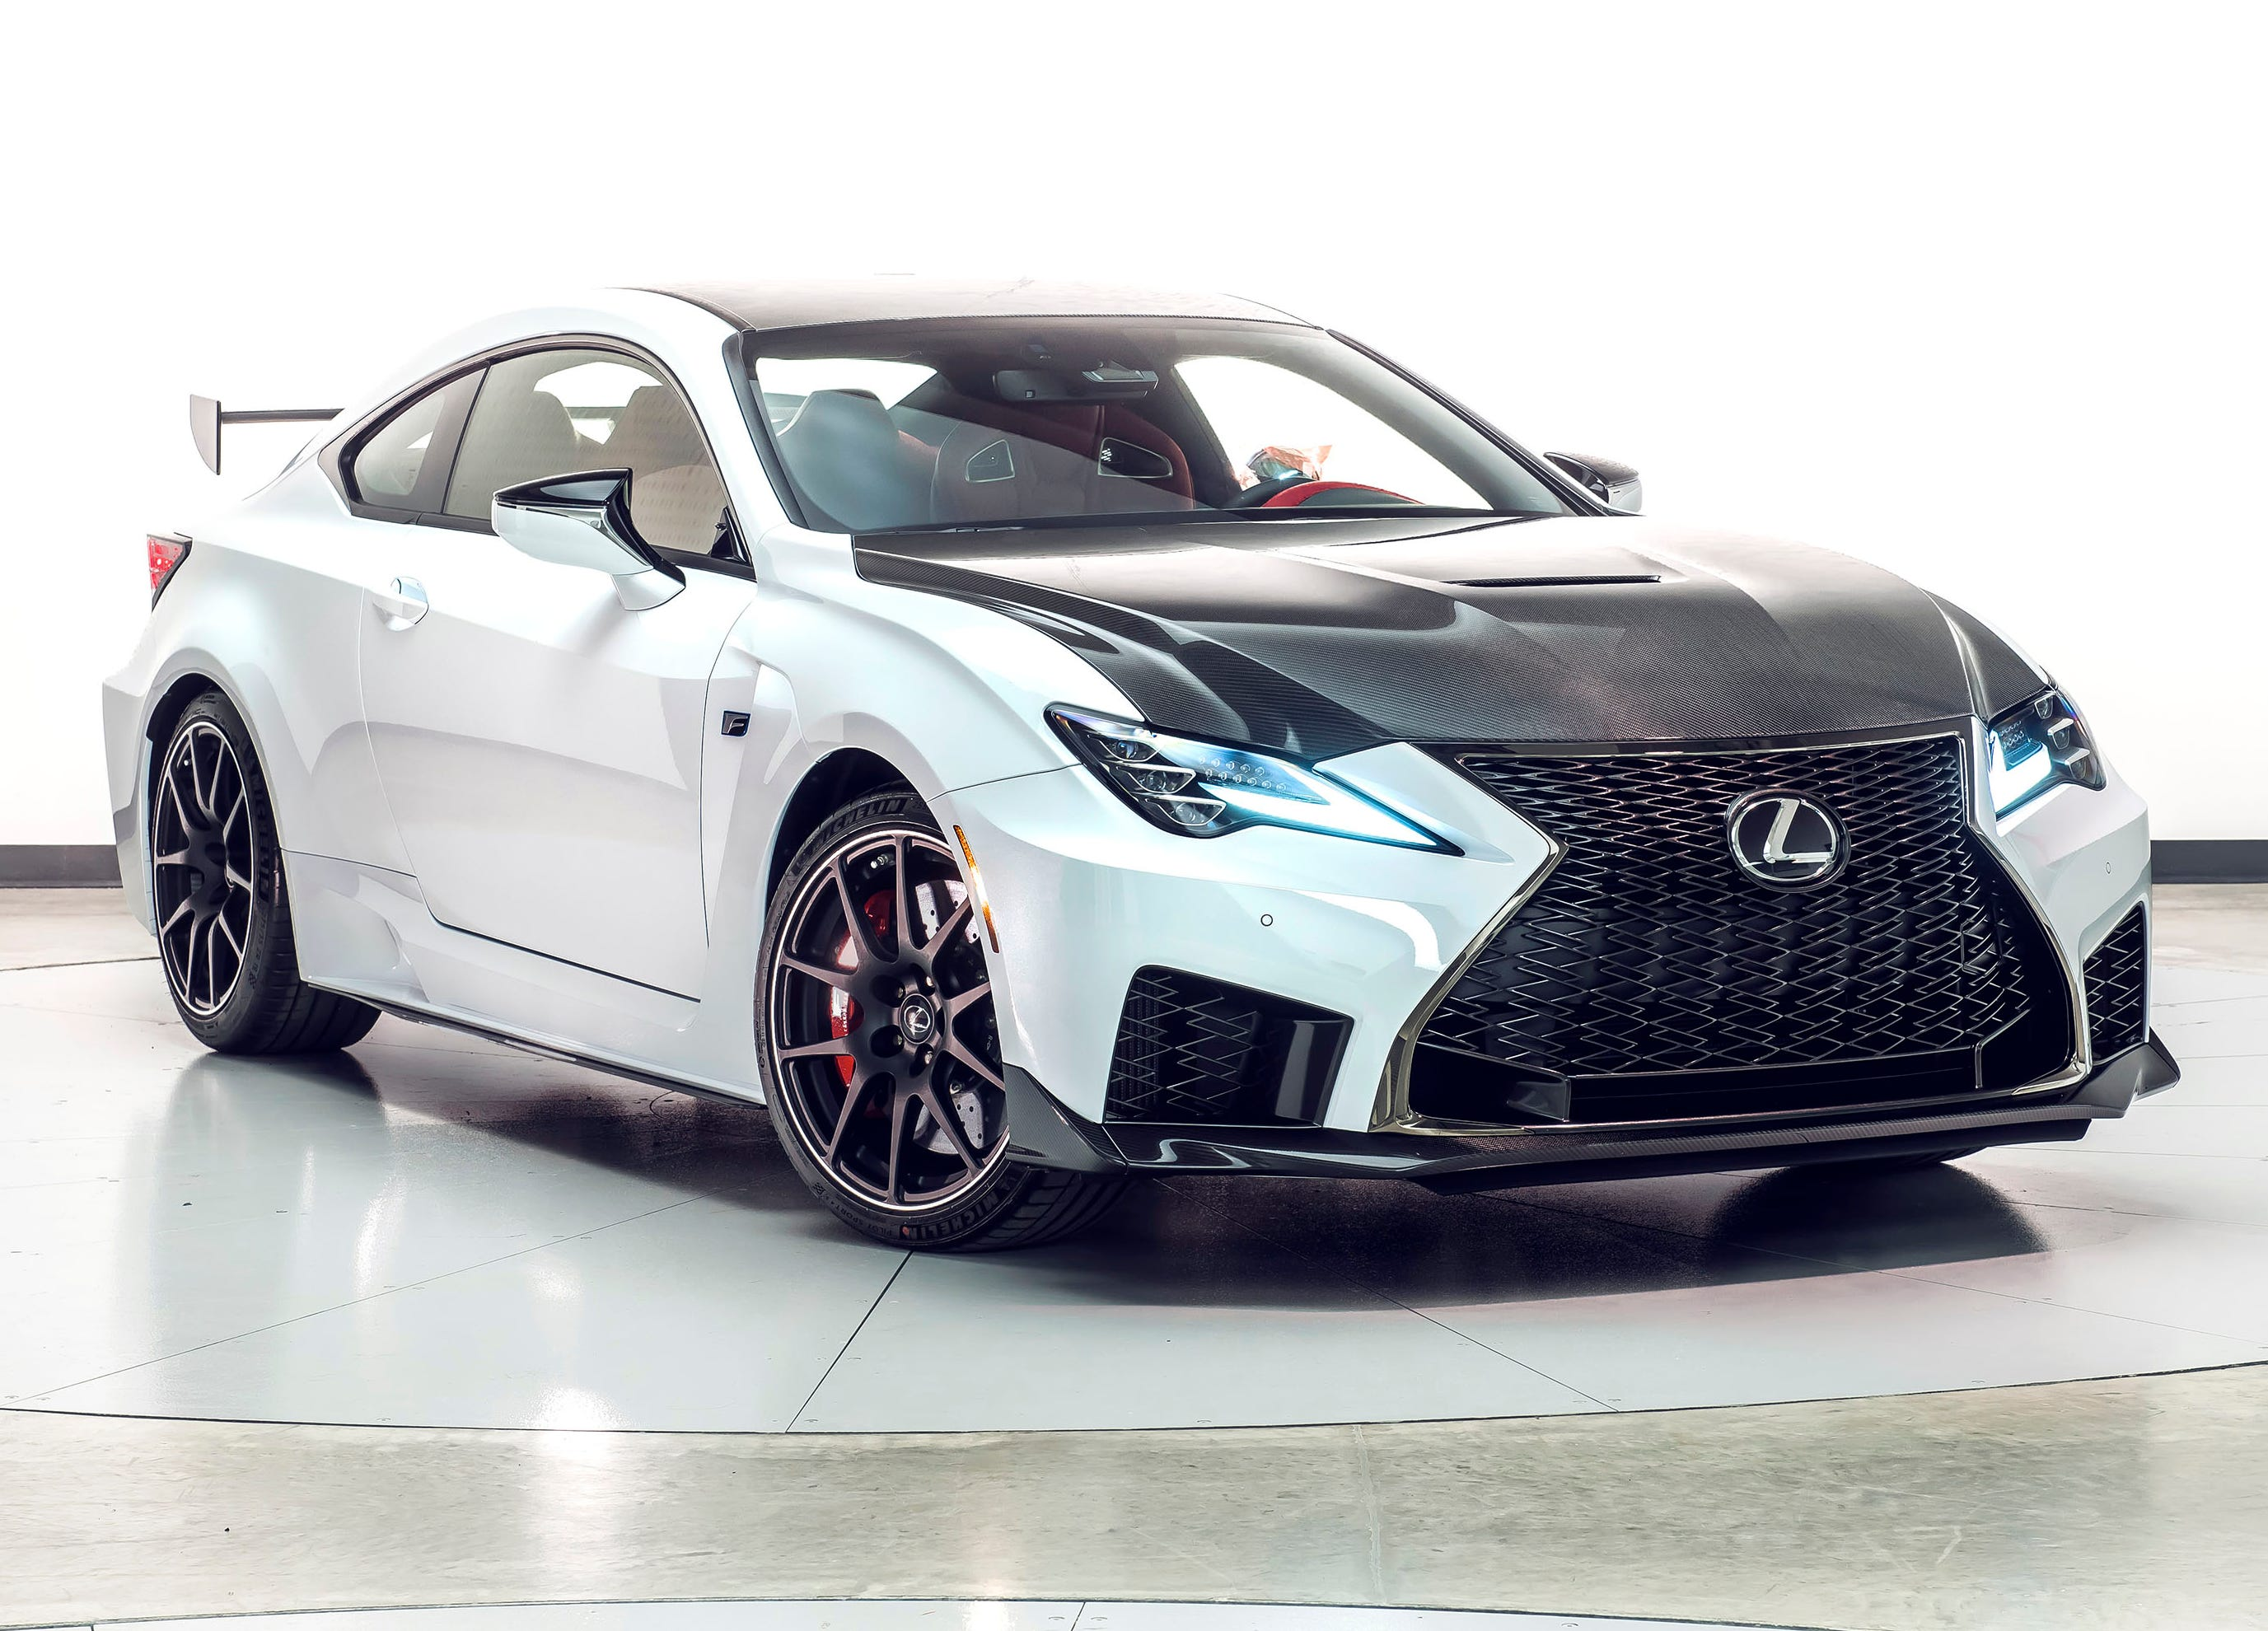 The 2020 Lexus RC F Track Edition